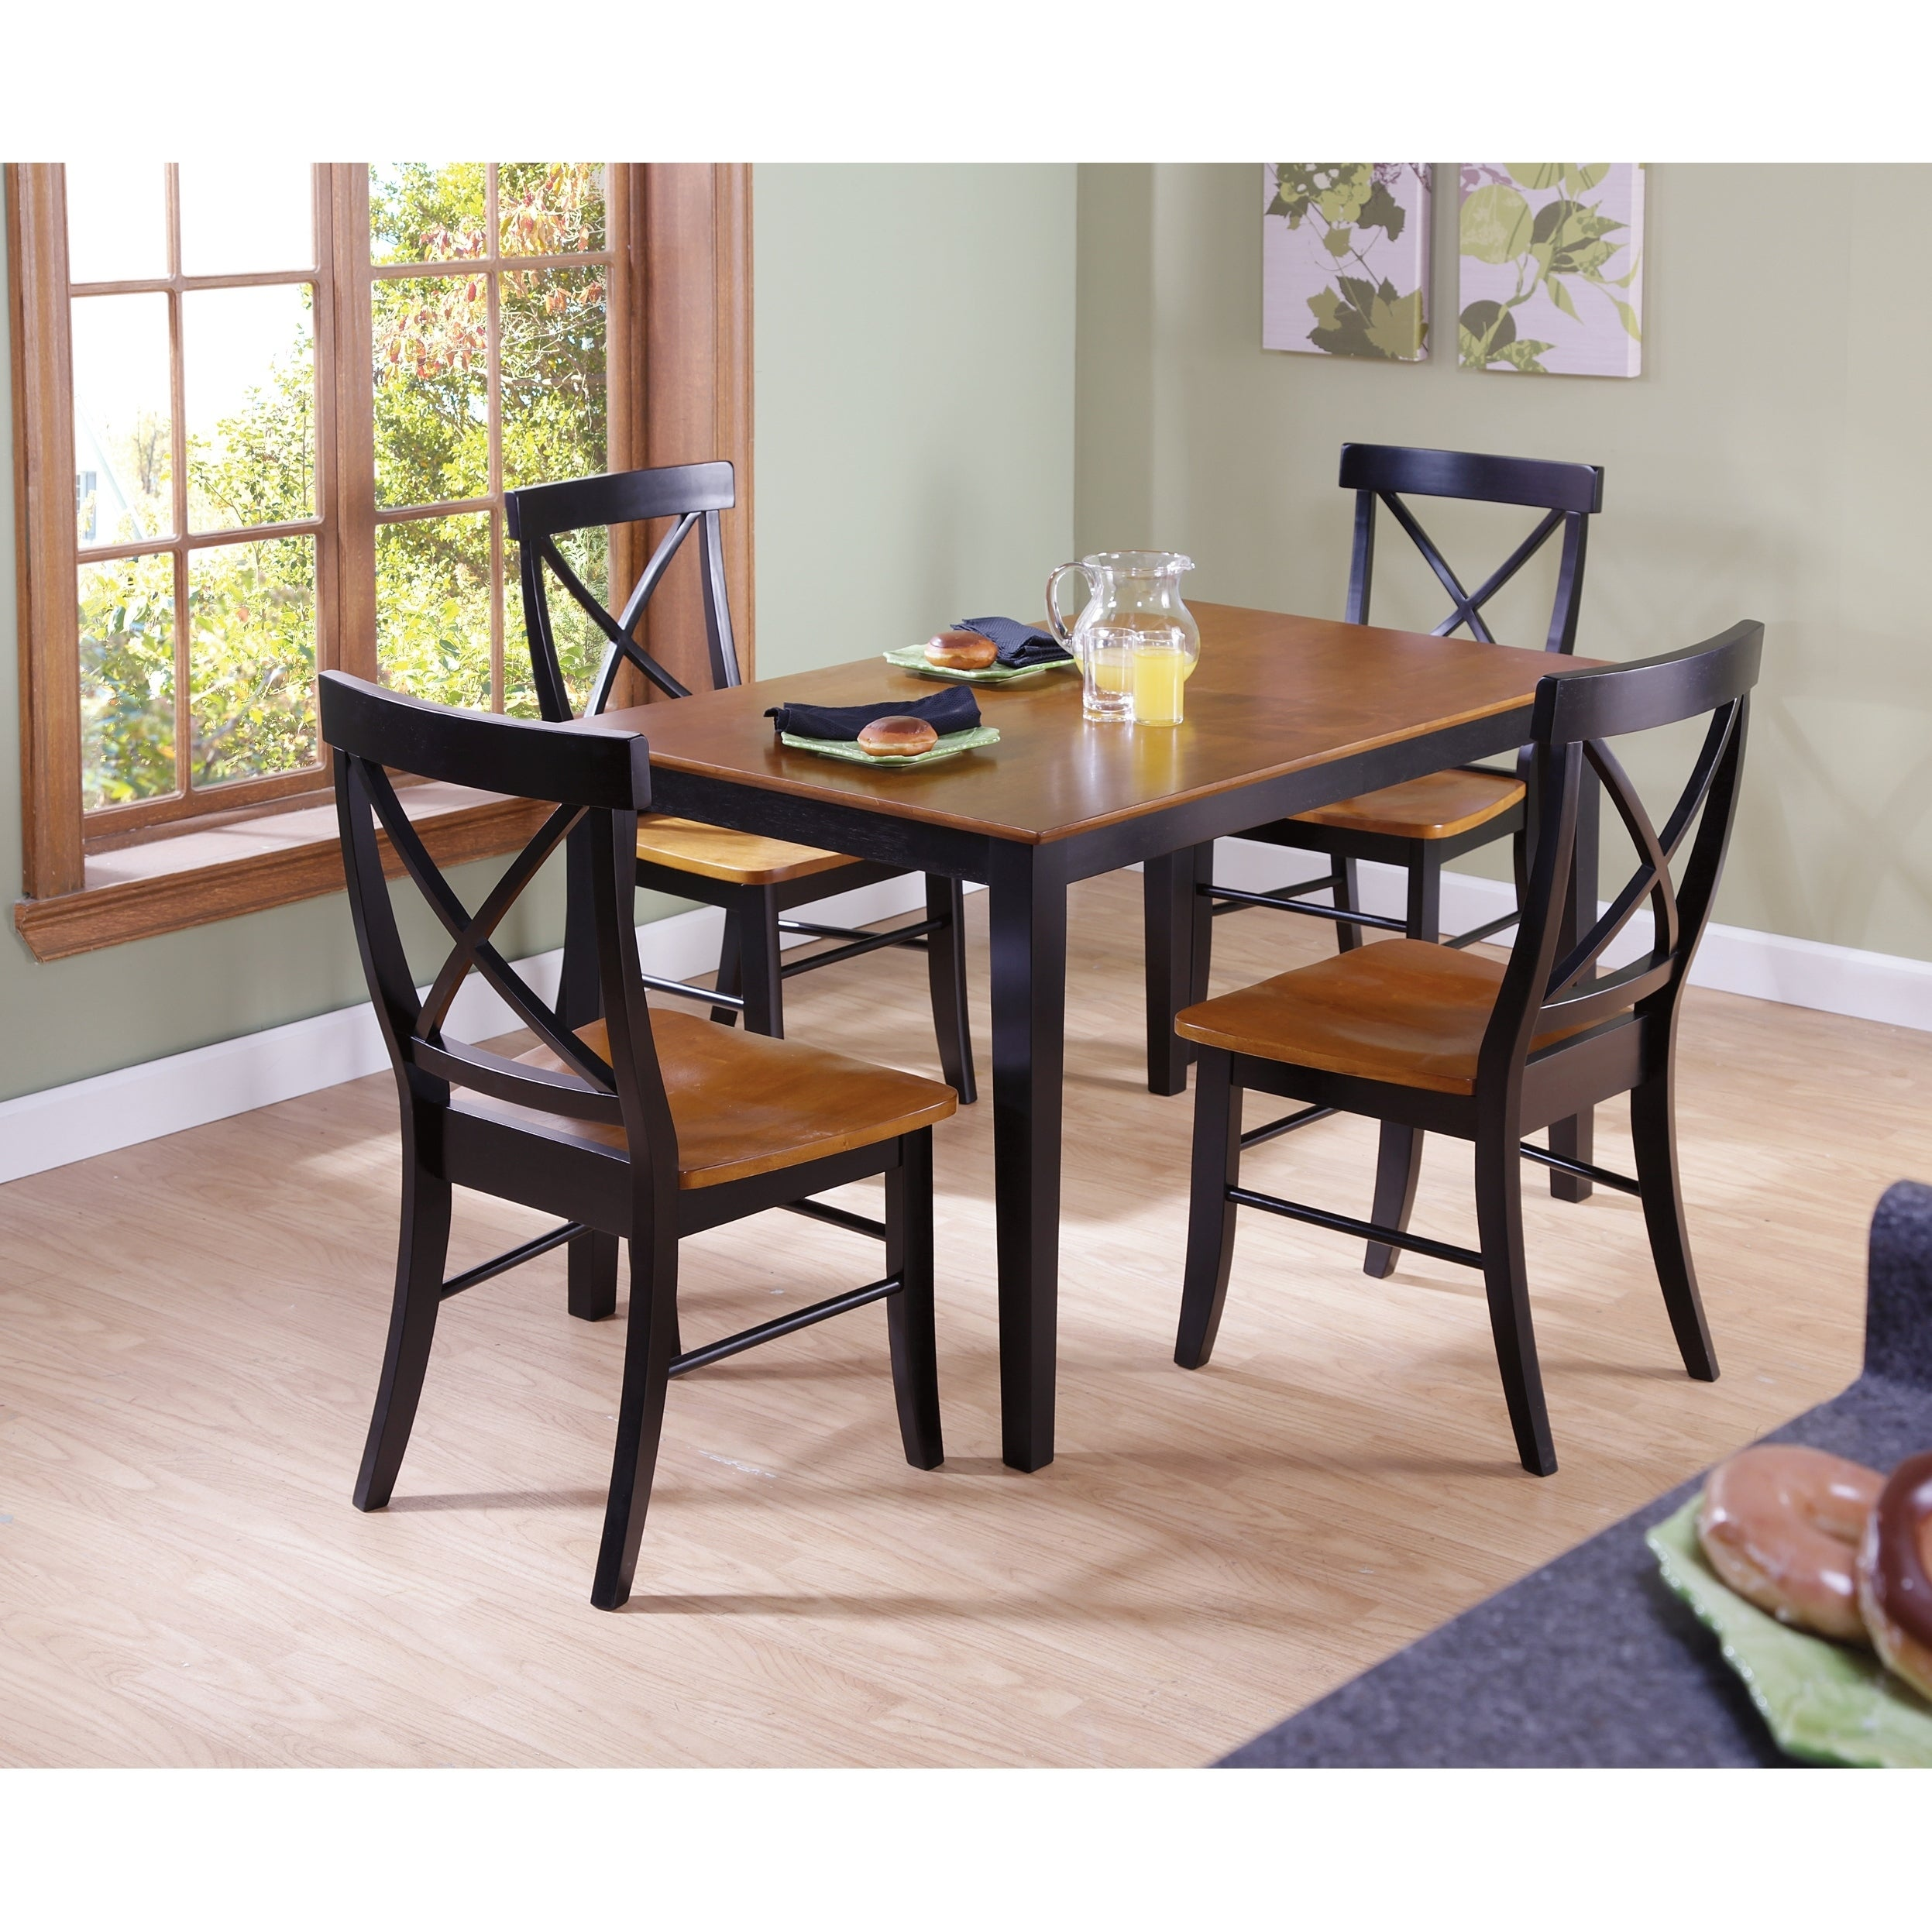 International Concepts 30 X 48 Dining Table With 4 X Back Chairs Set Of 5 Overstock 18525037